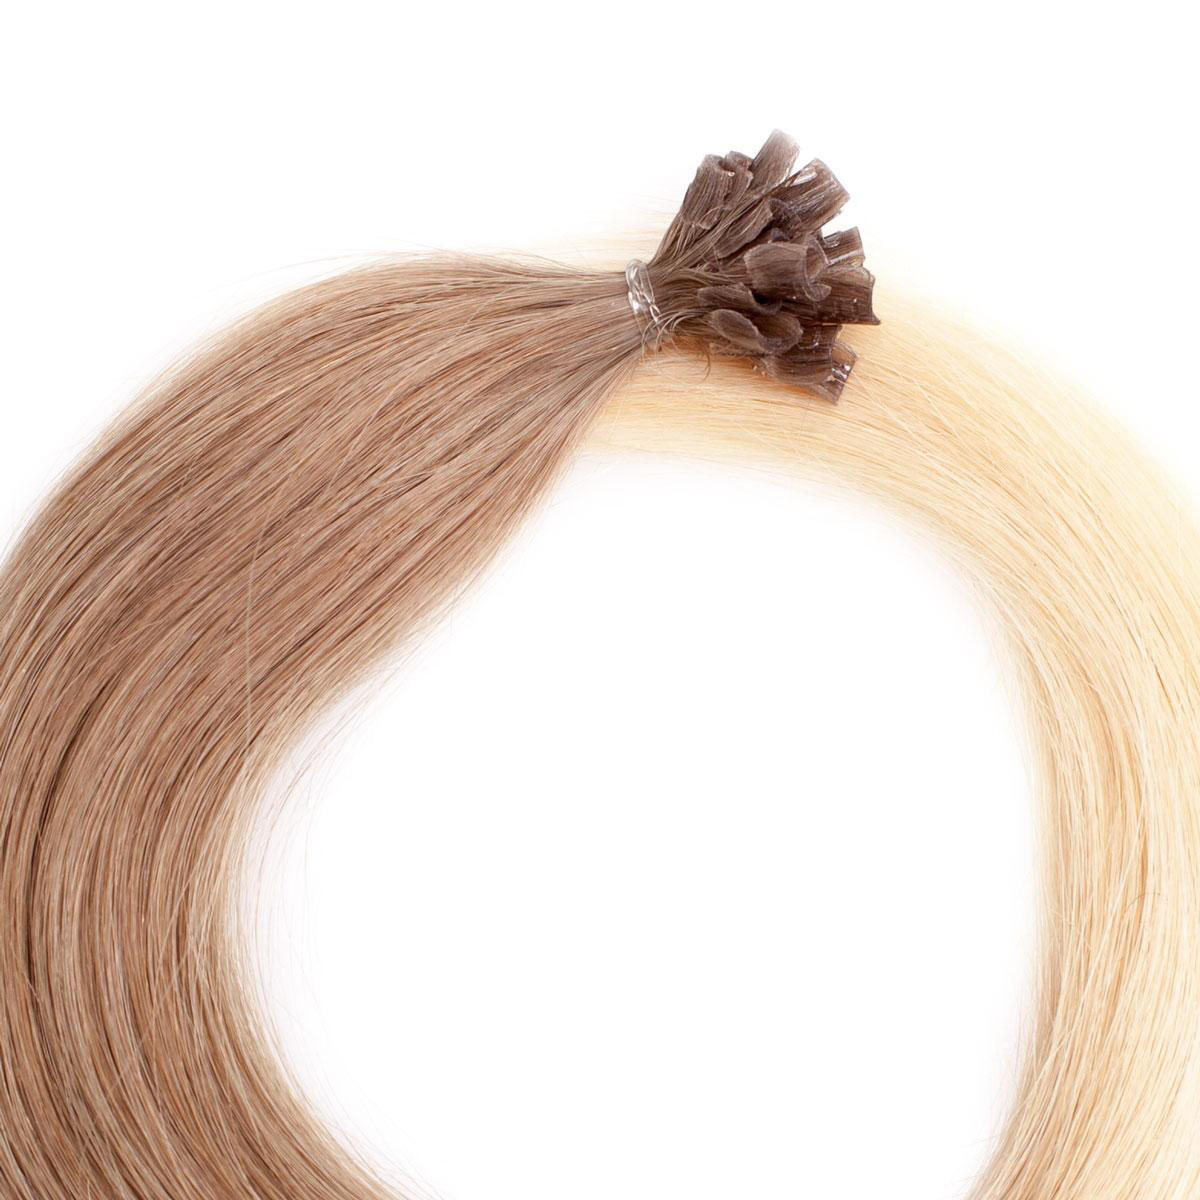 Nail Hair O7.3/10.8 Cendre Ash Blond Ombre 40 cm